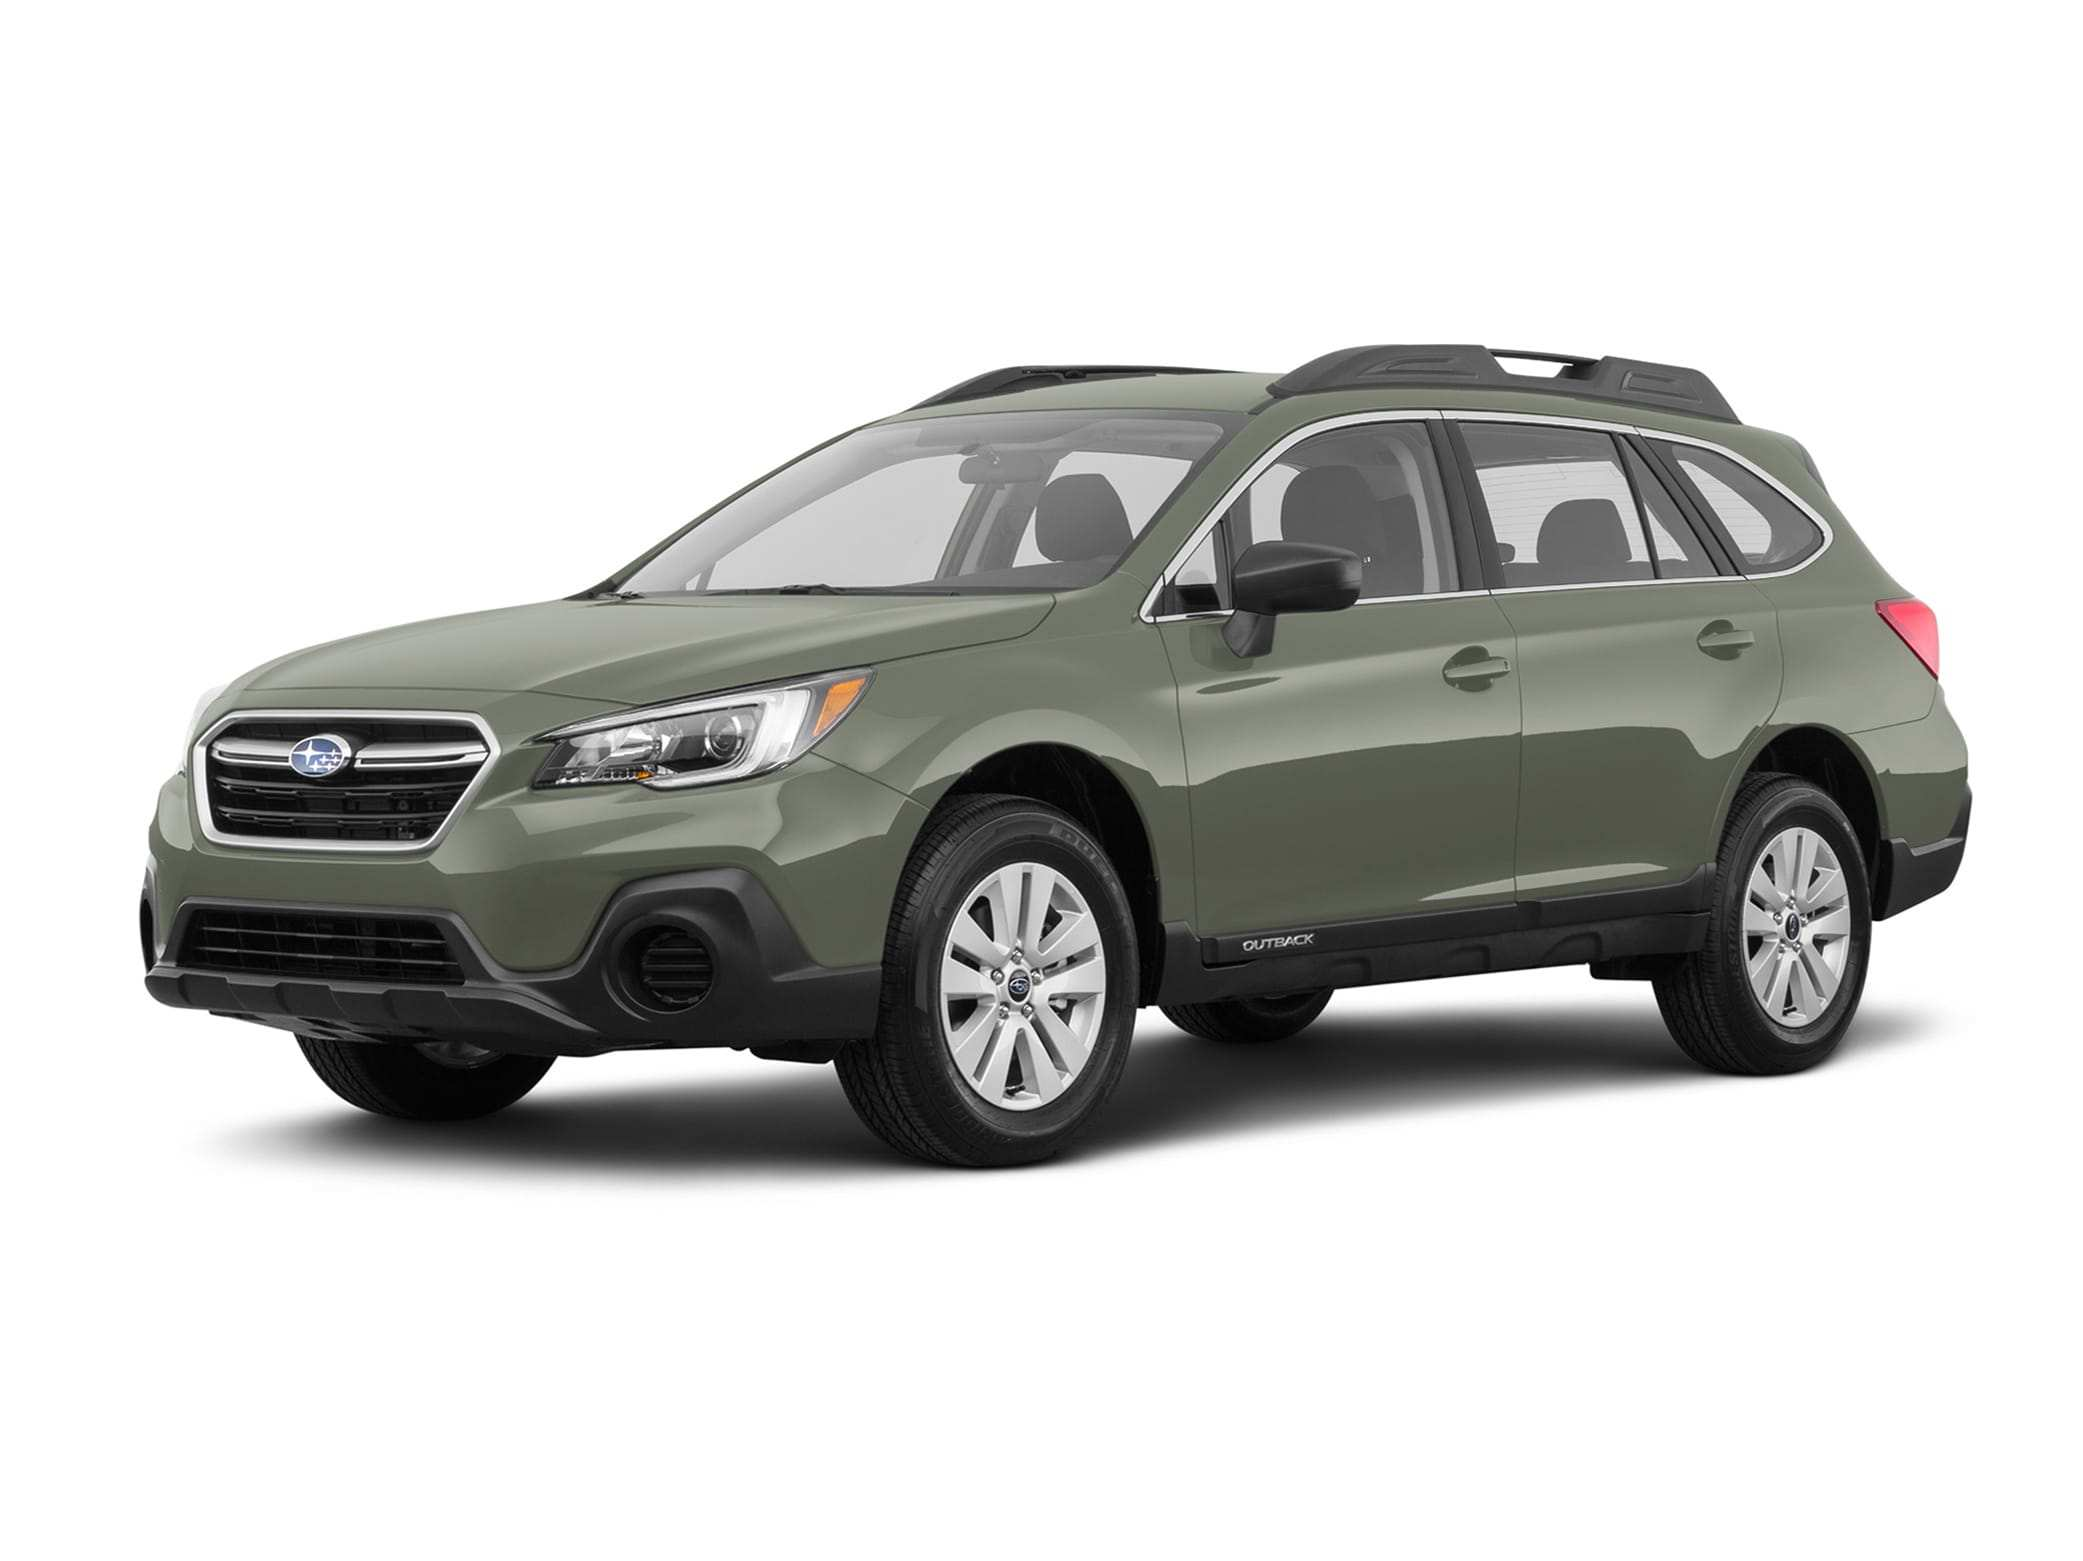 92 Best Review 2019 Subaru Exterior Colors Interior with 2019 Subaru Exterior Colors